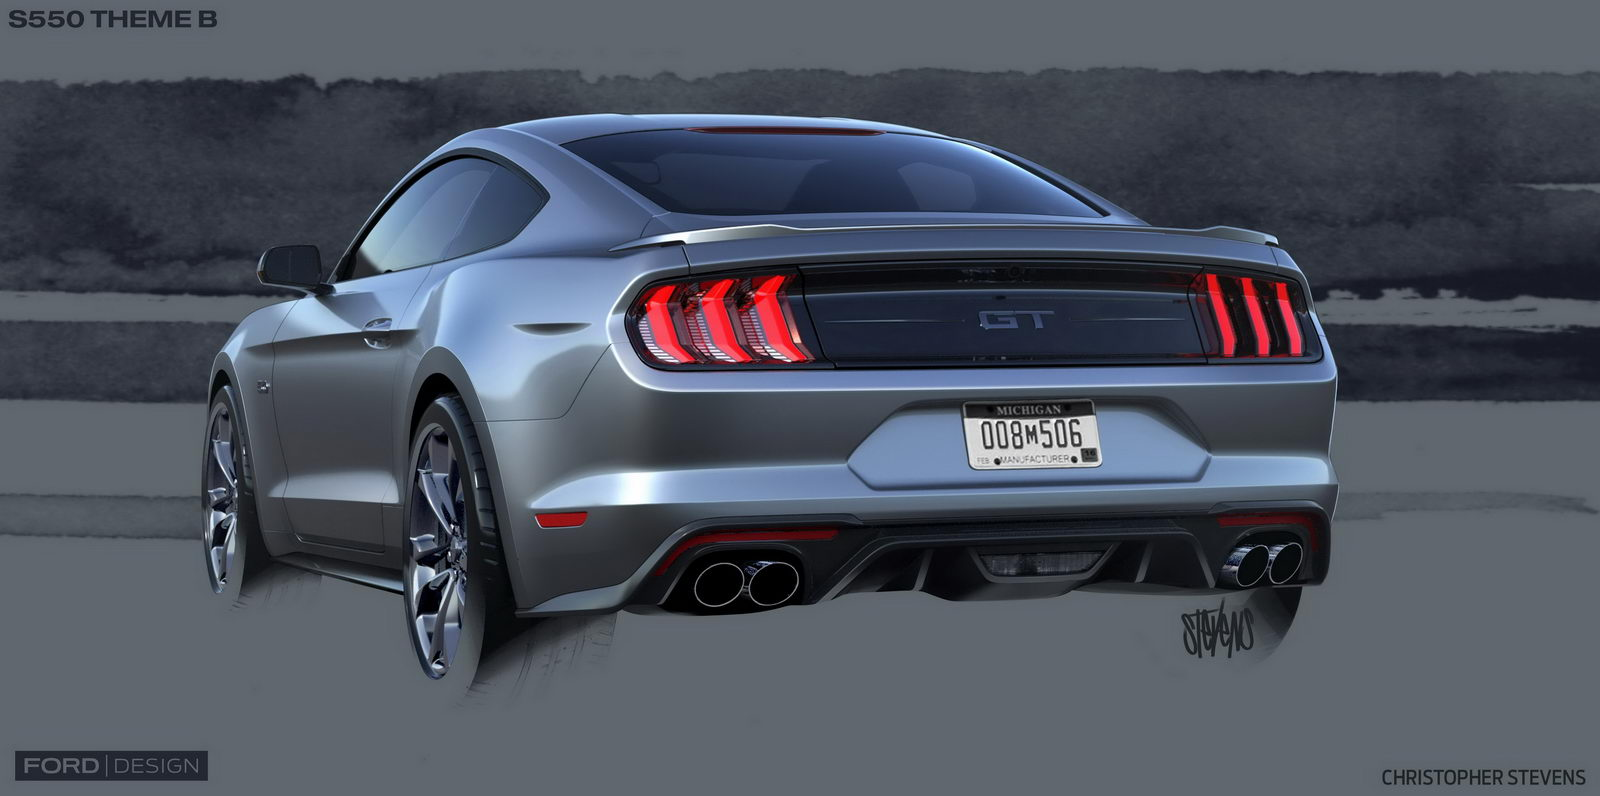 Ford Mustang GT facelift 2018 8